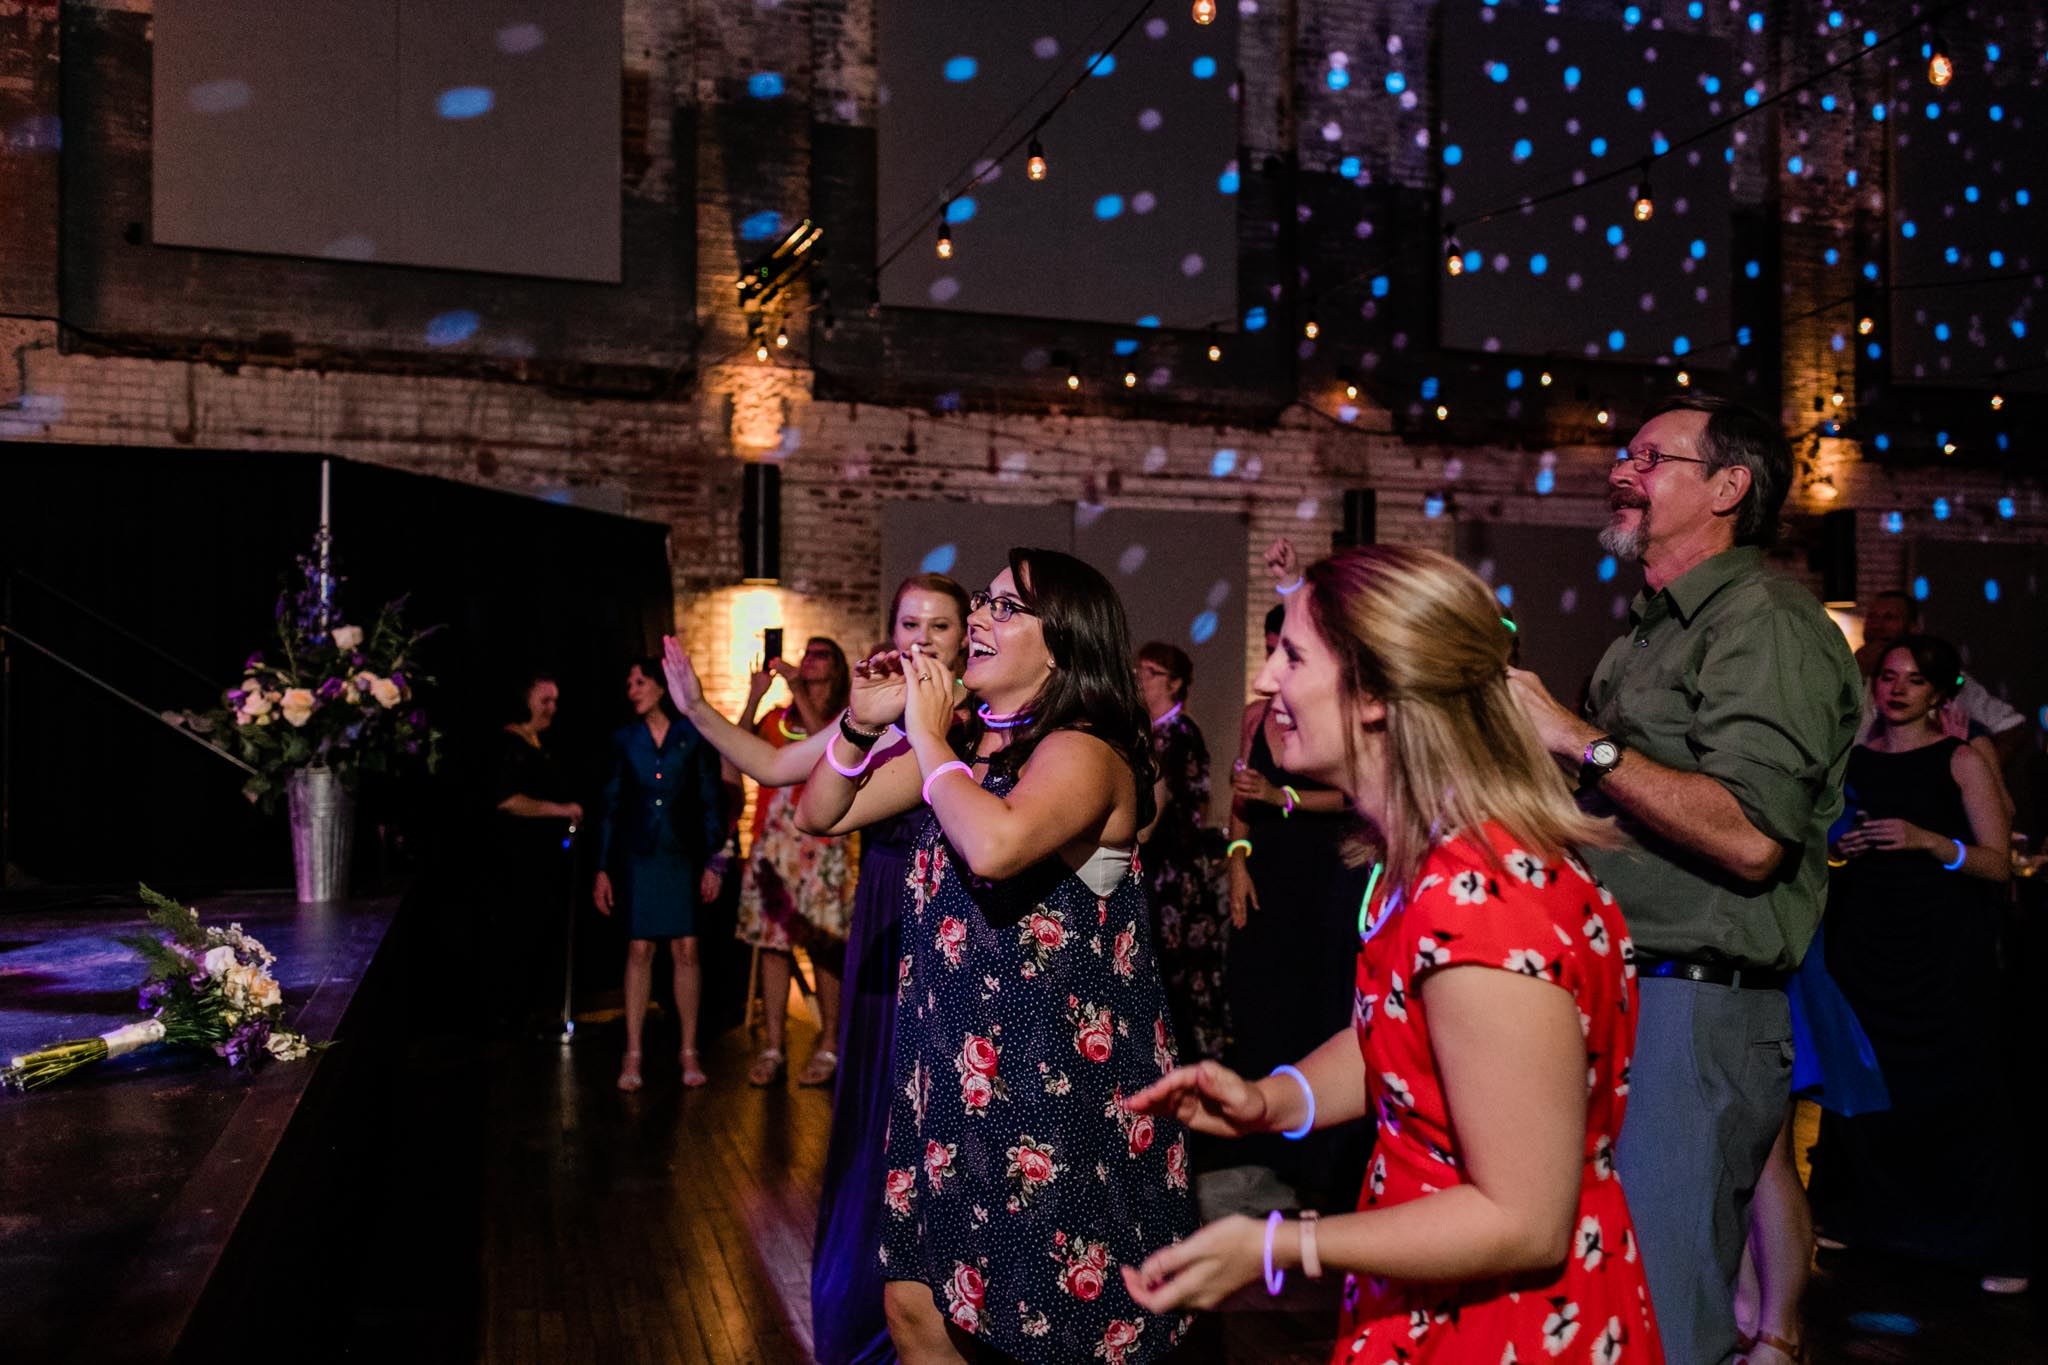 Haw River Ballroom Wedding | Durham Photographer | By G. Lin Photography | Wedding guests cheering